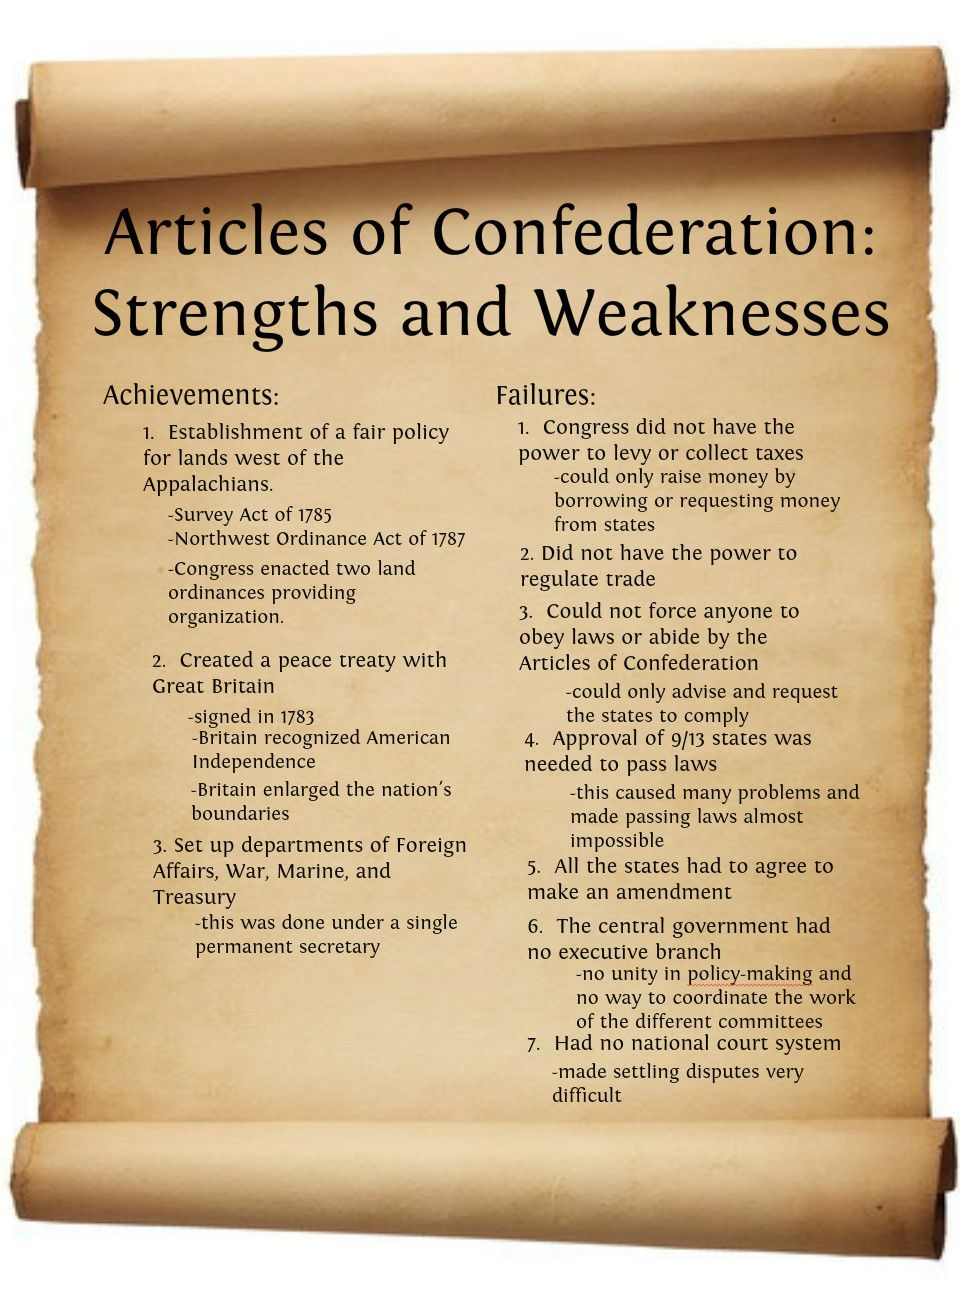 what are the weakness of the articles of confederation